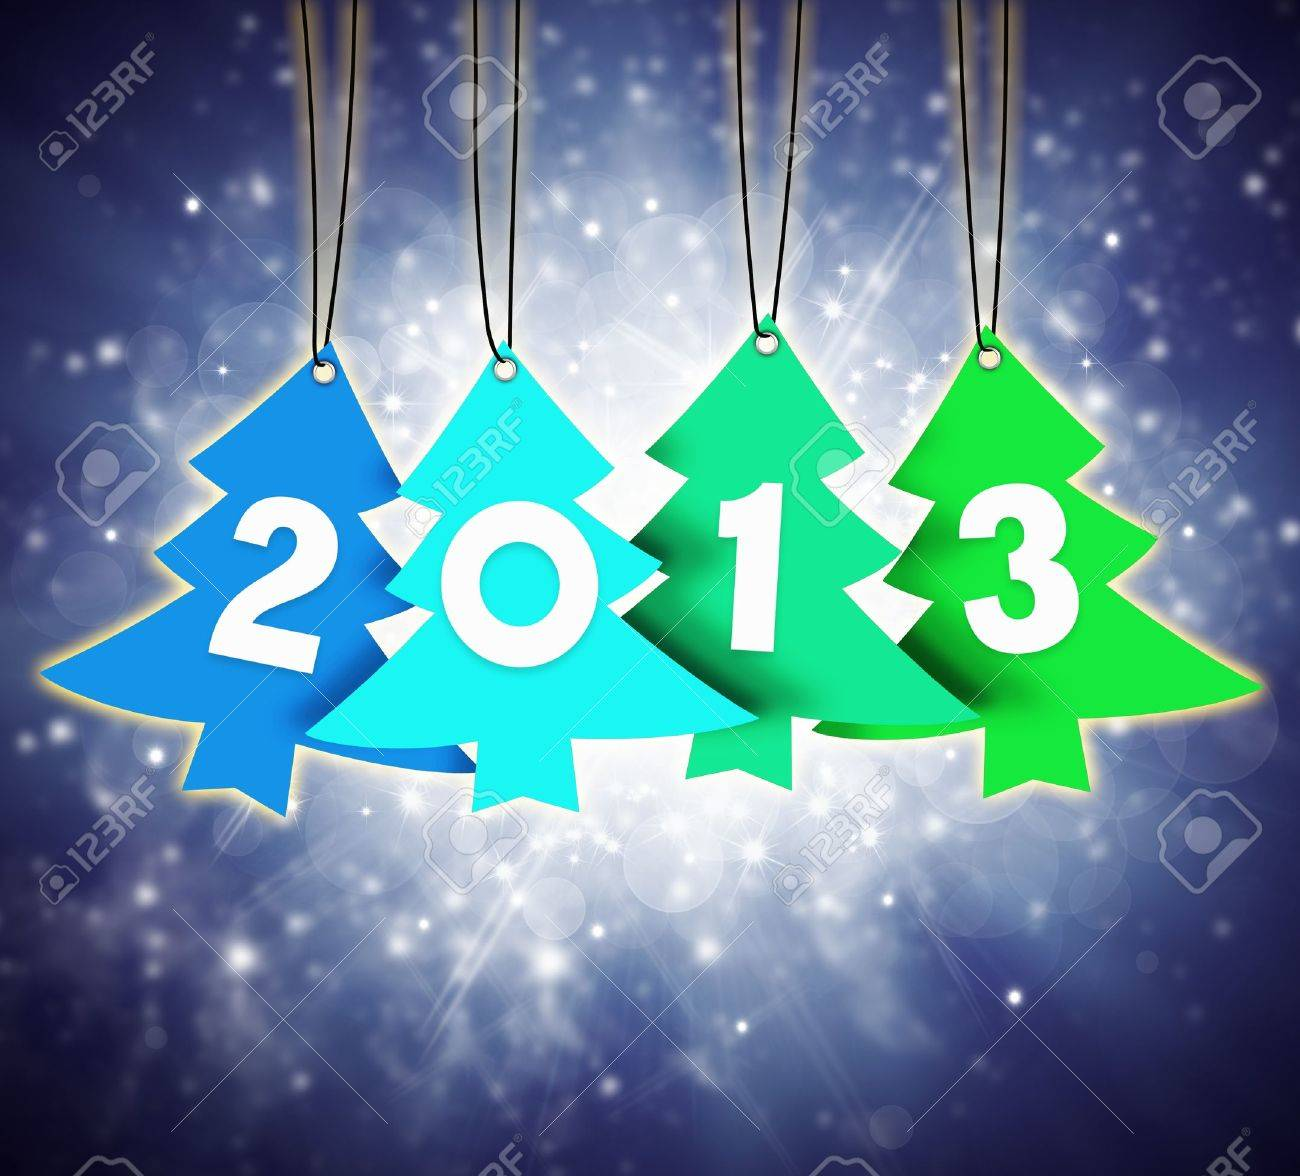 christmas and new year 2013 Stock Photo - 15393450